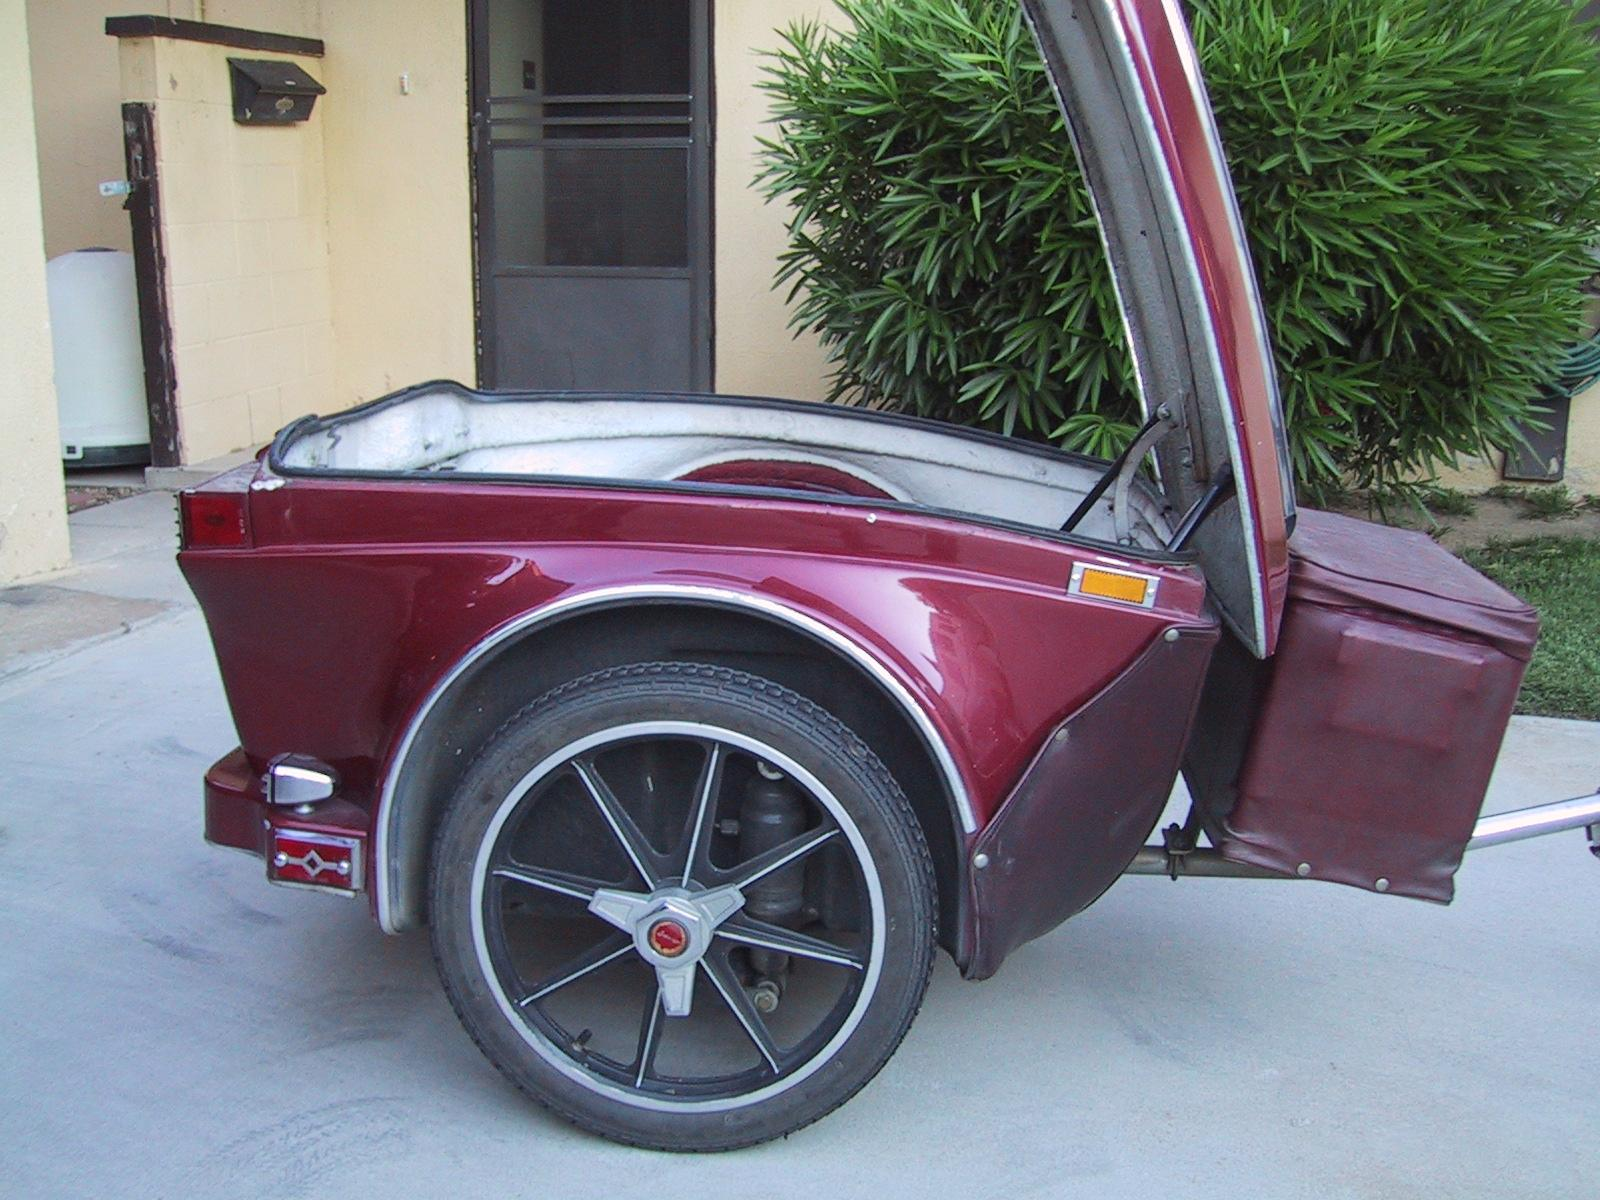 bushtec trailer tires with Yamaha on Sarasota Motorcycle Trailers Quality Motorcycle Touring besides Ch ion Trikes Honda Vtx 1800 besides Watch also Bushtec Hitch together with Honda Gold wing 1800 abs Motorcycles For Sale.